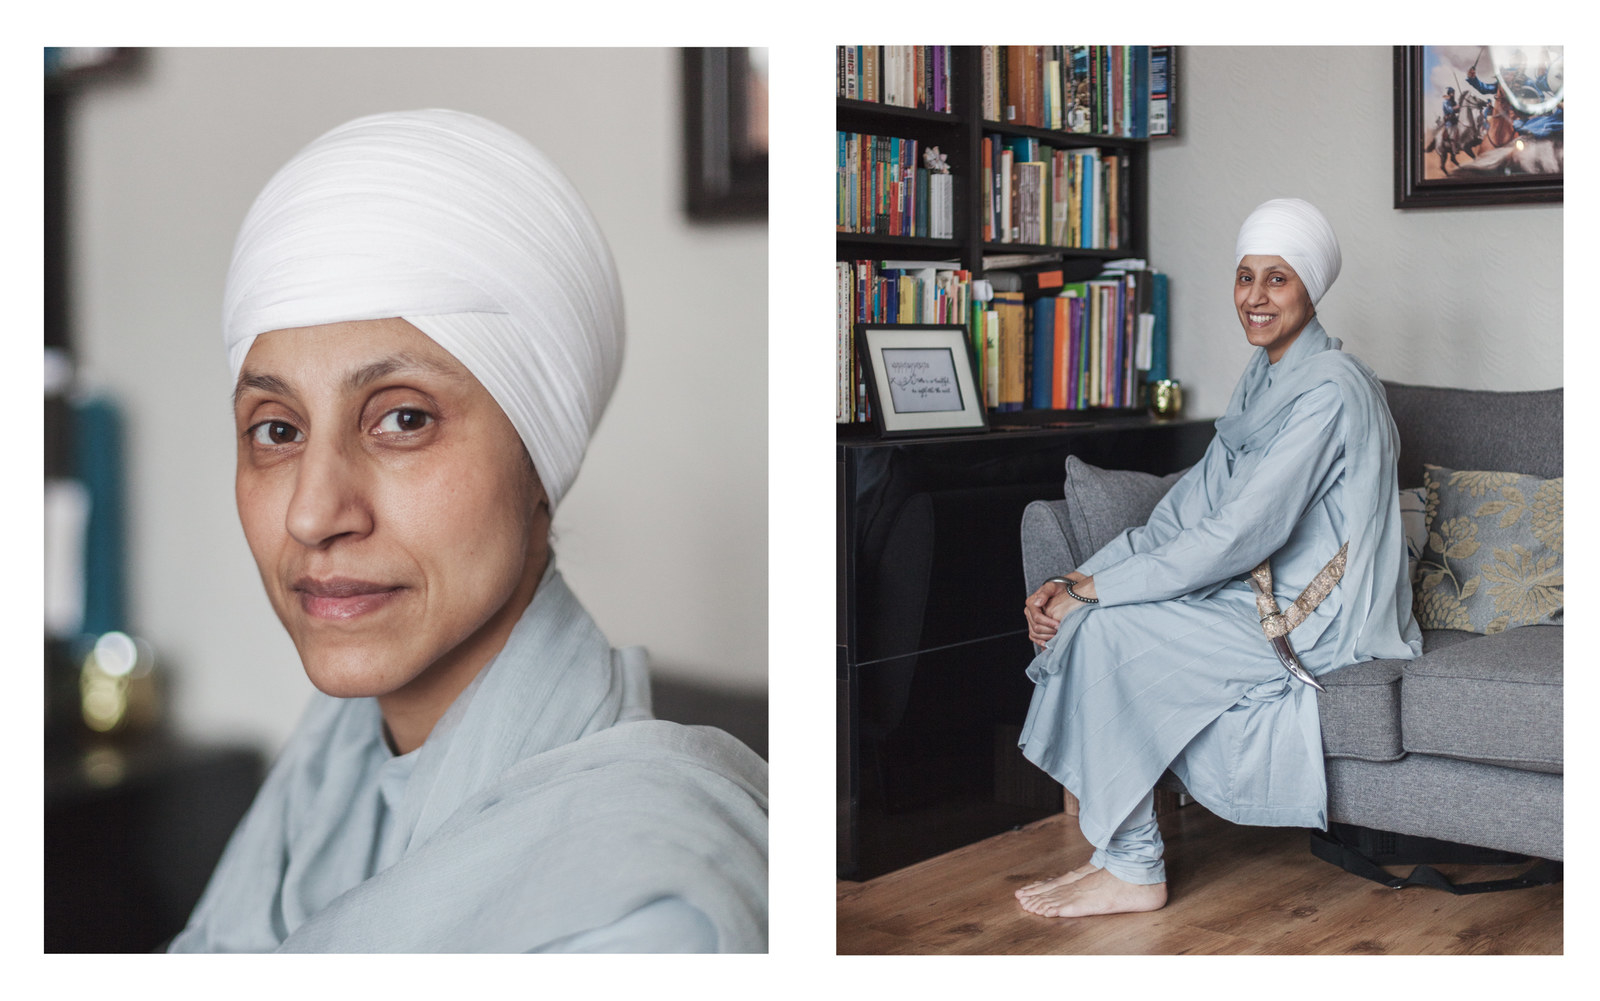 Sikhs, Muslims, Hindus, Jews, And Christians Showed Us What They Wear When They Worship